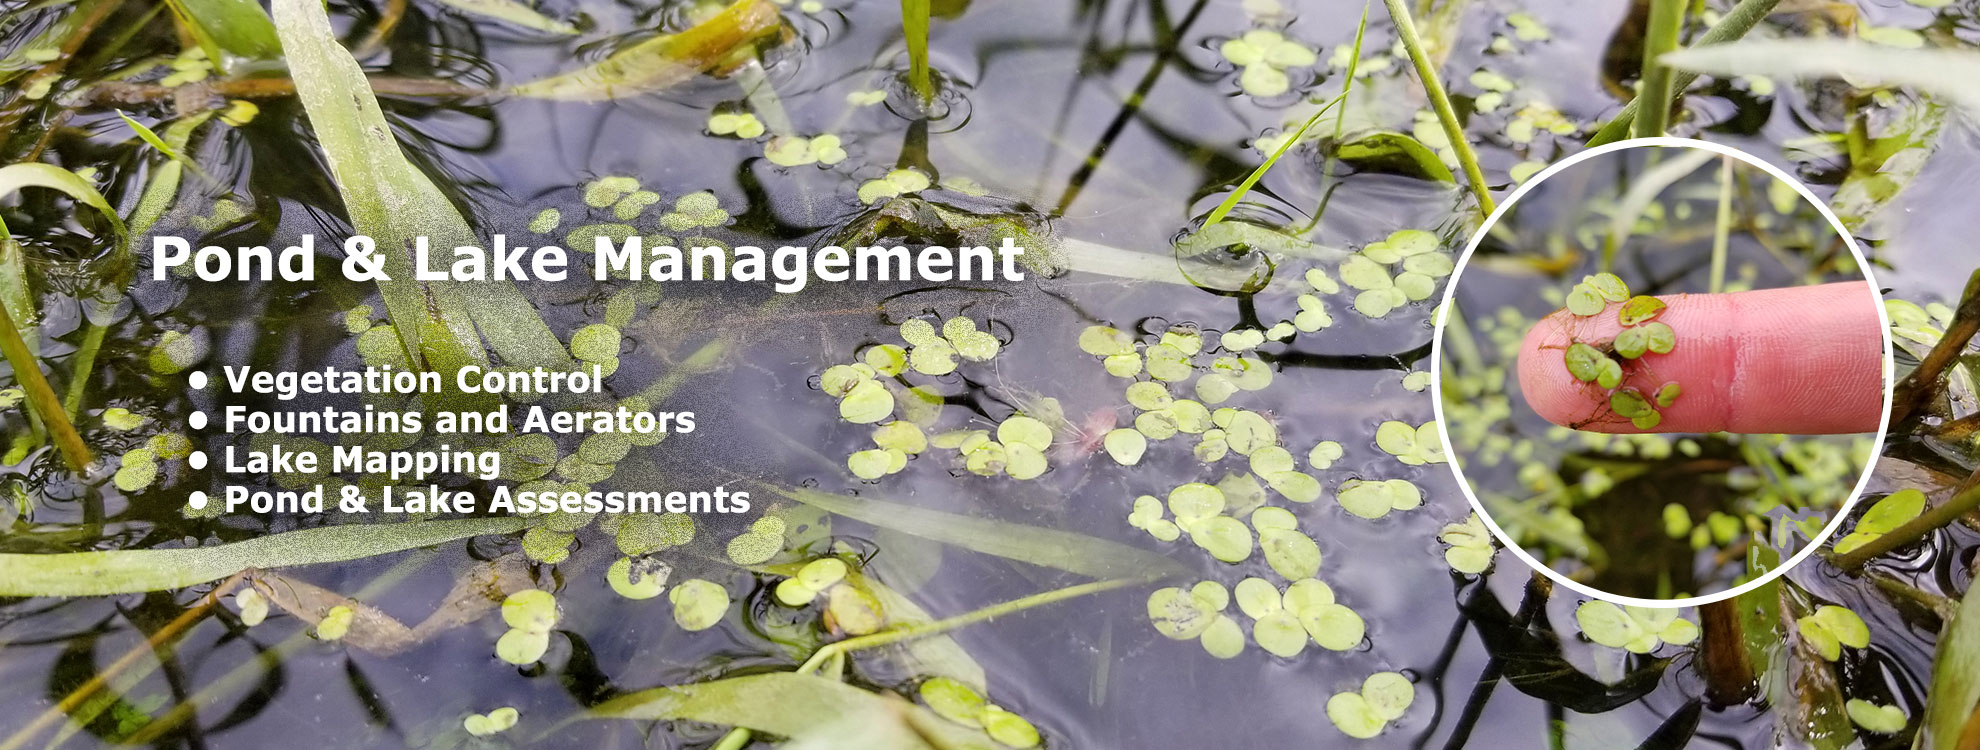 Pond and Lake Management in Greensboro, Winston-Salem, High Point and Burlington